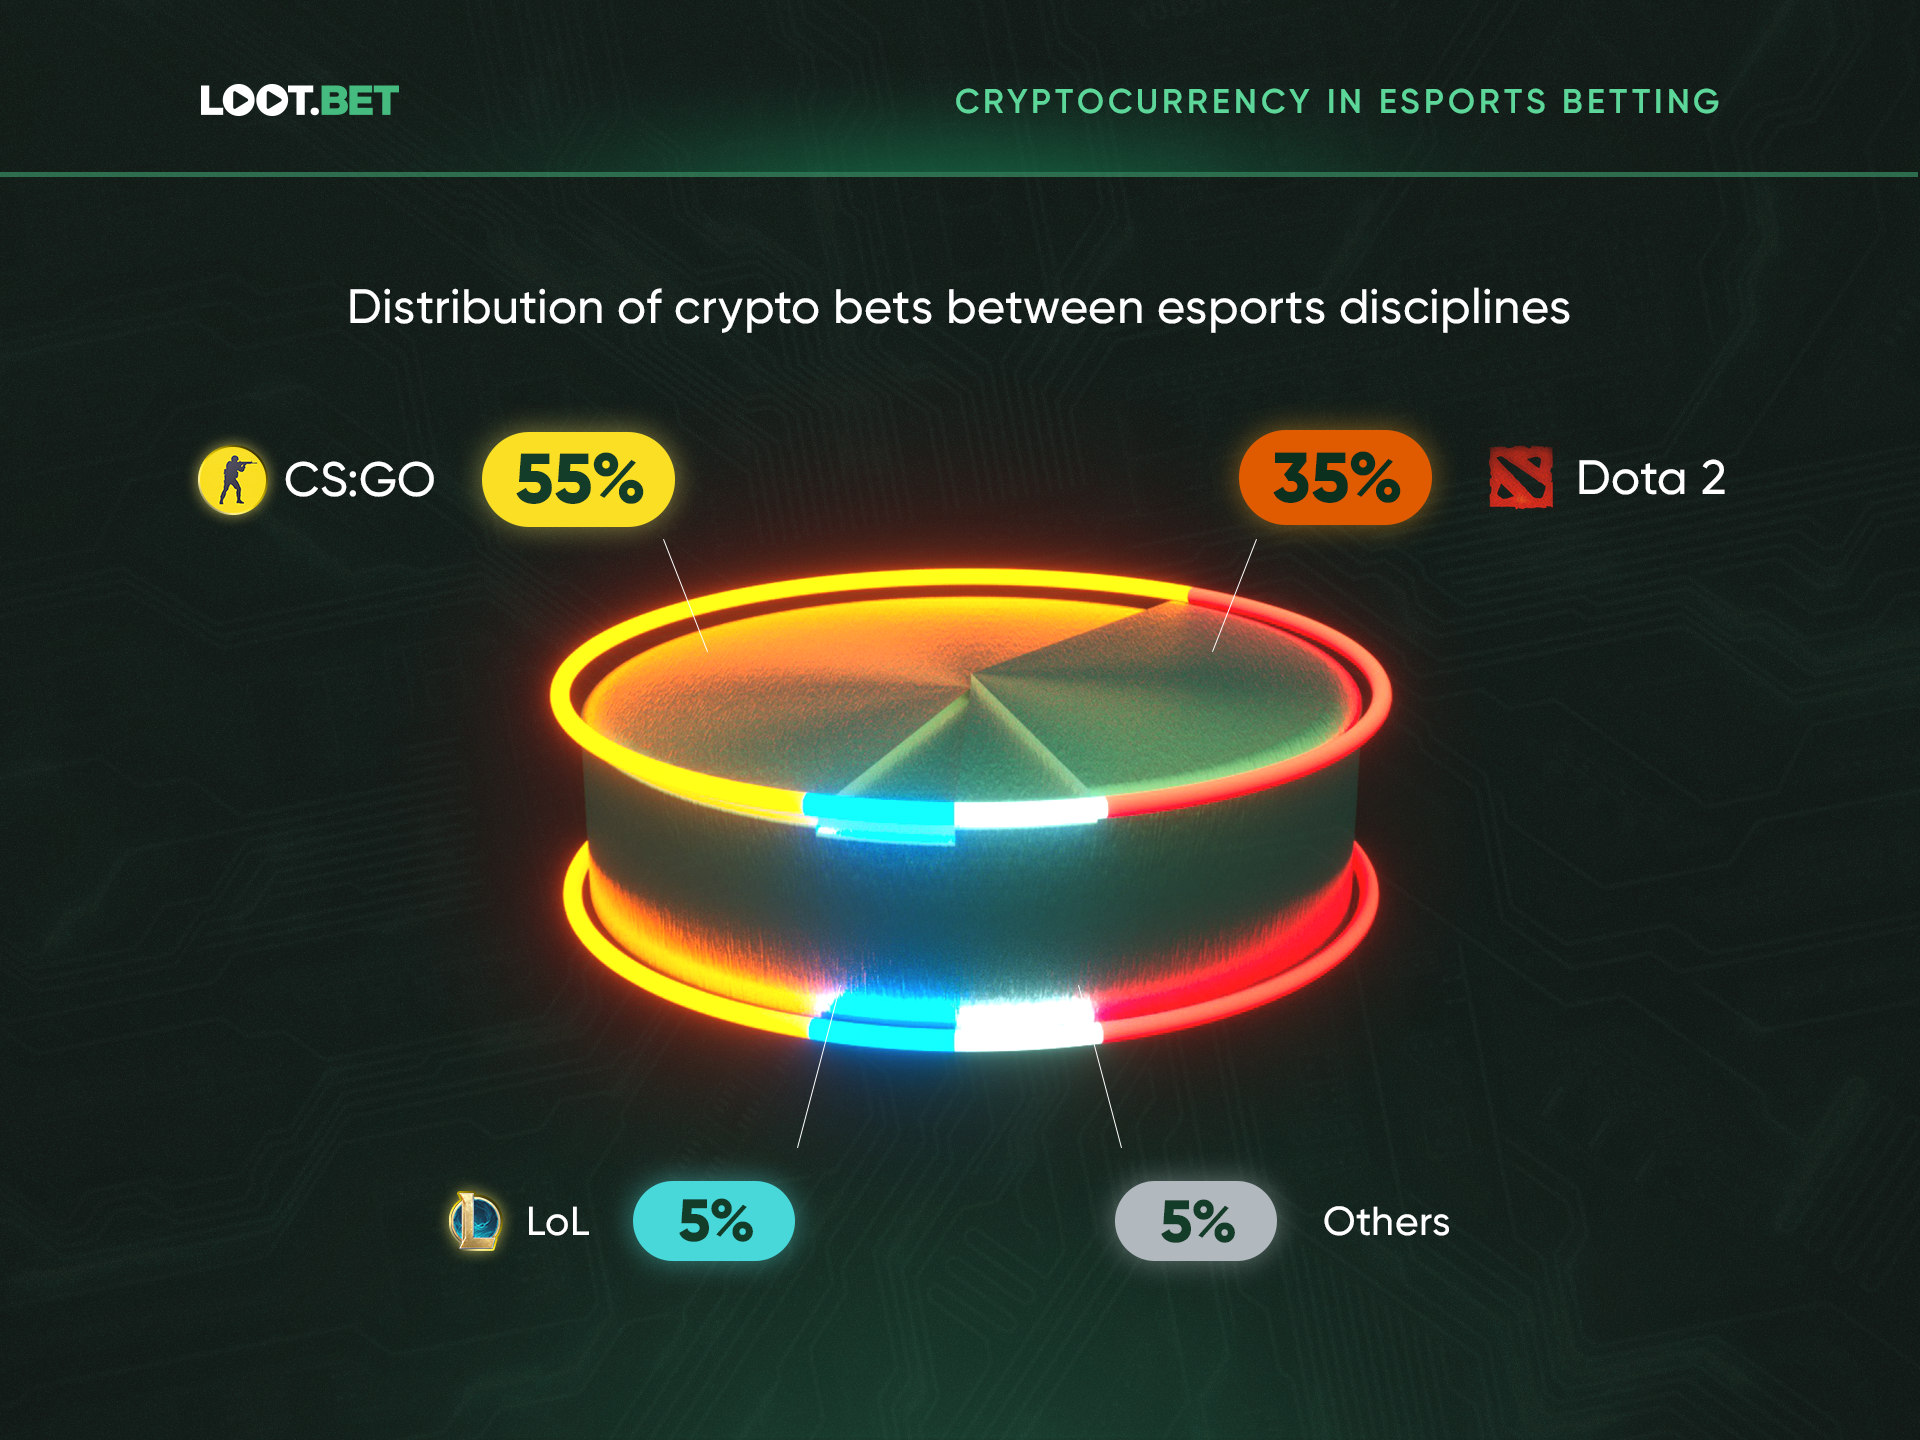 Crypto Esports Betting 4 - Research Reveals Cryptocurrency Owners to Be the Riskiest Esports Bettors